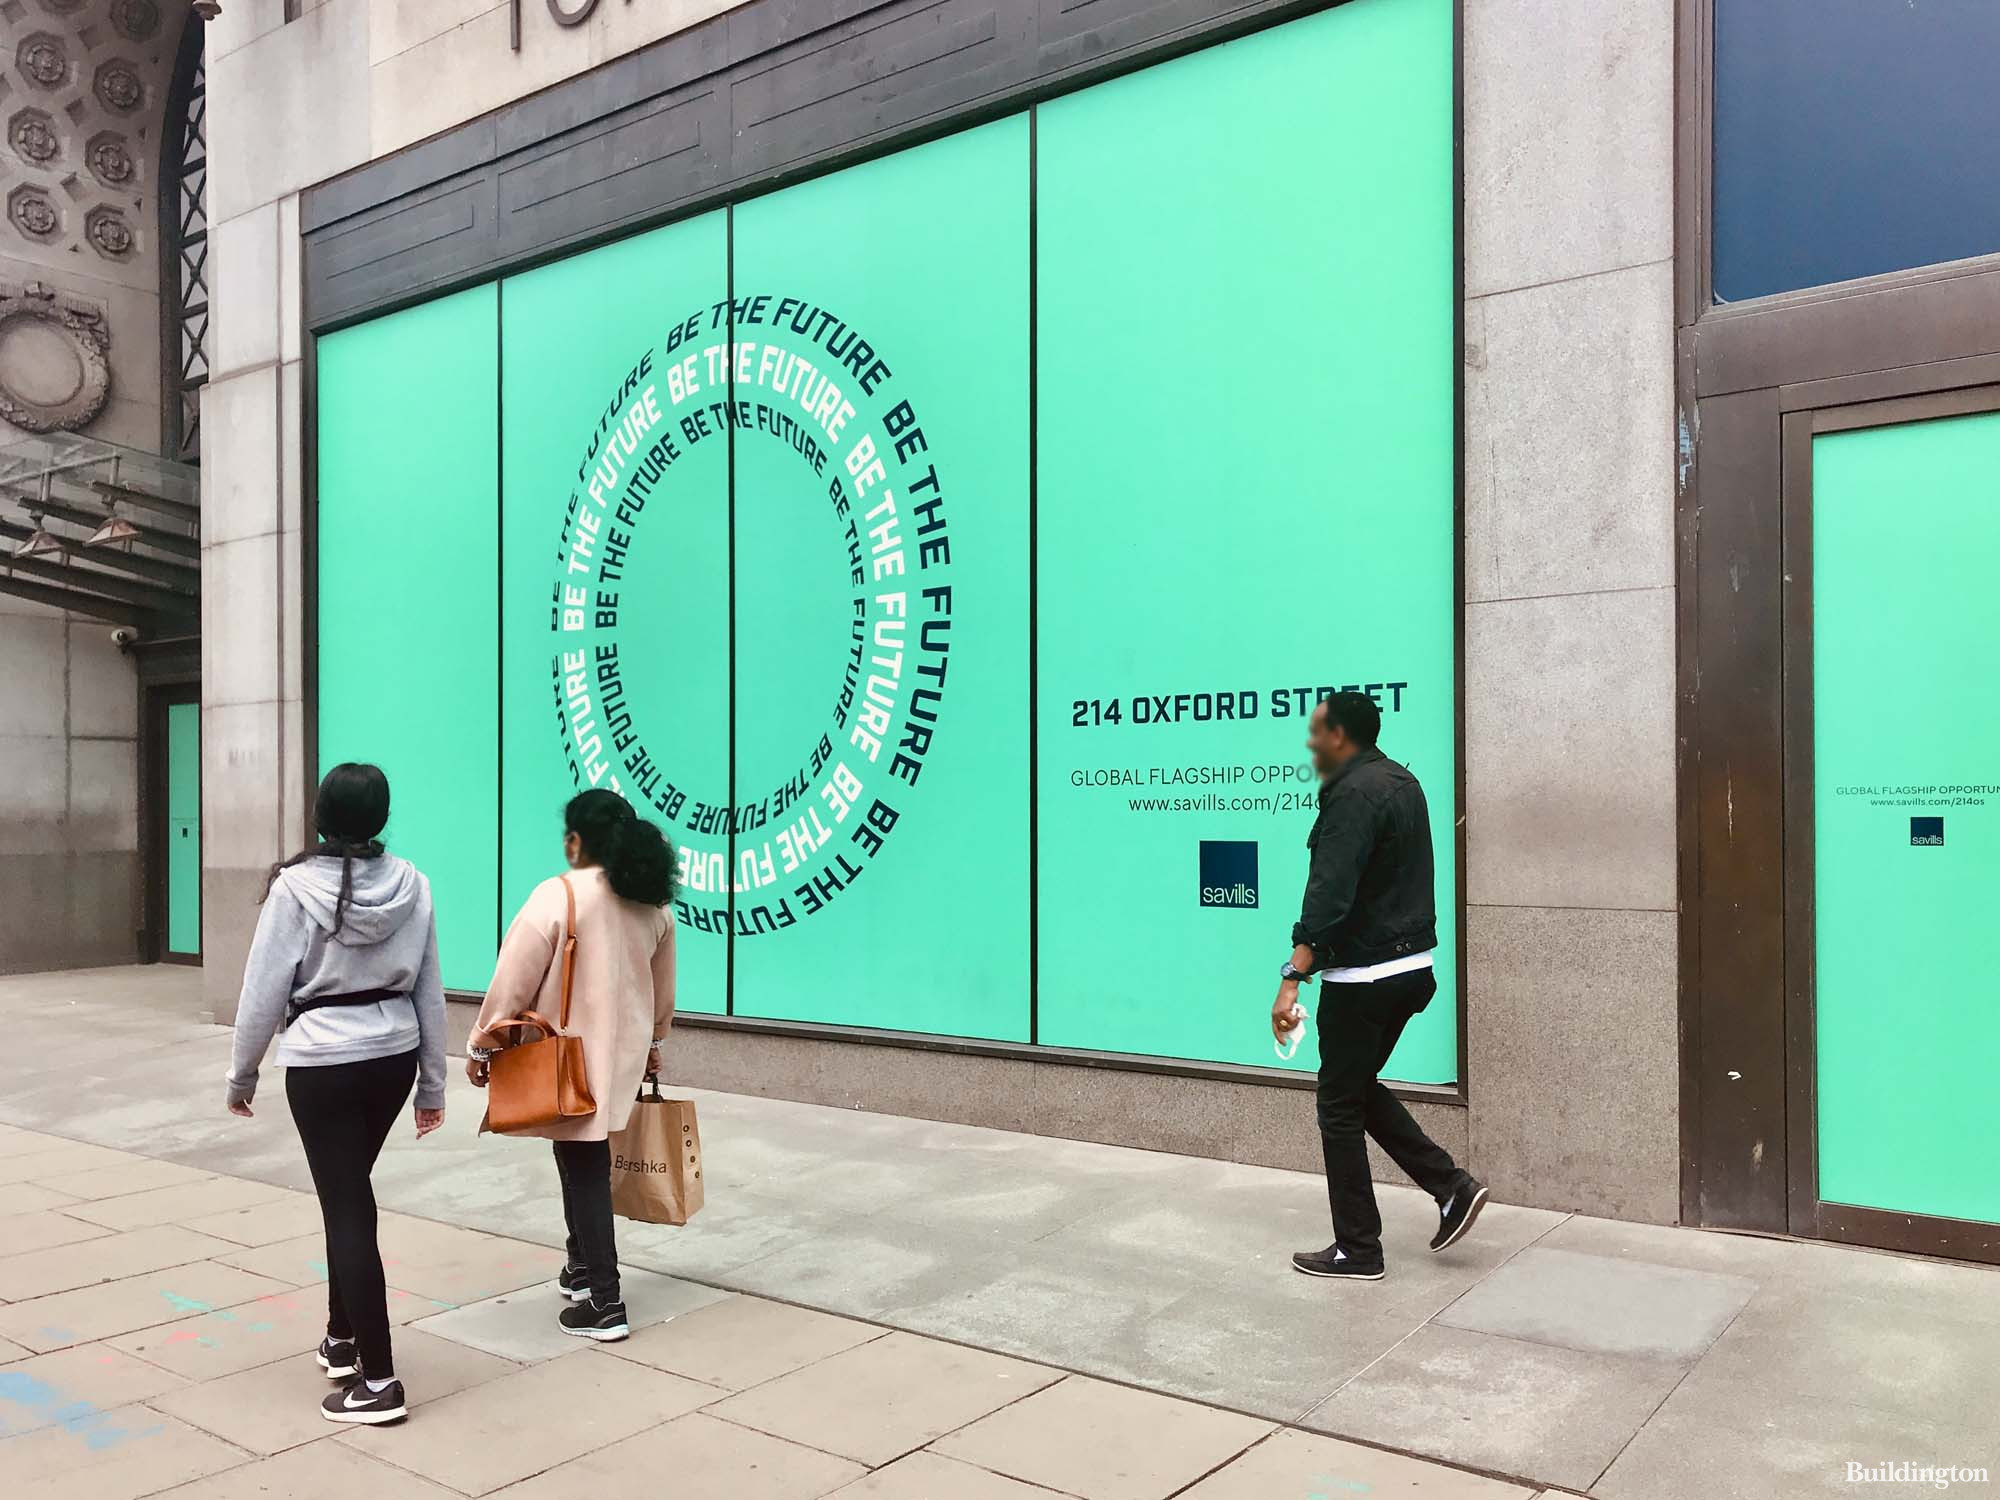 Be the future of a global flagship opportunity. Savills at 214 Oxford Street in May 2021.